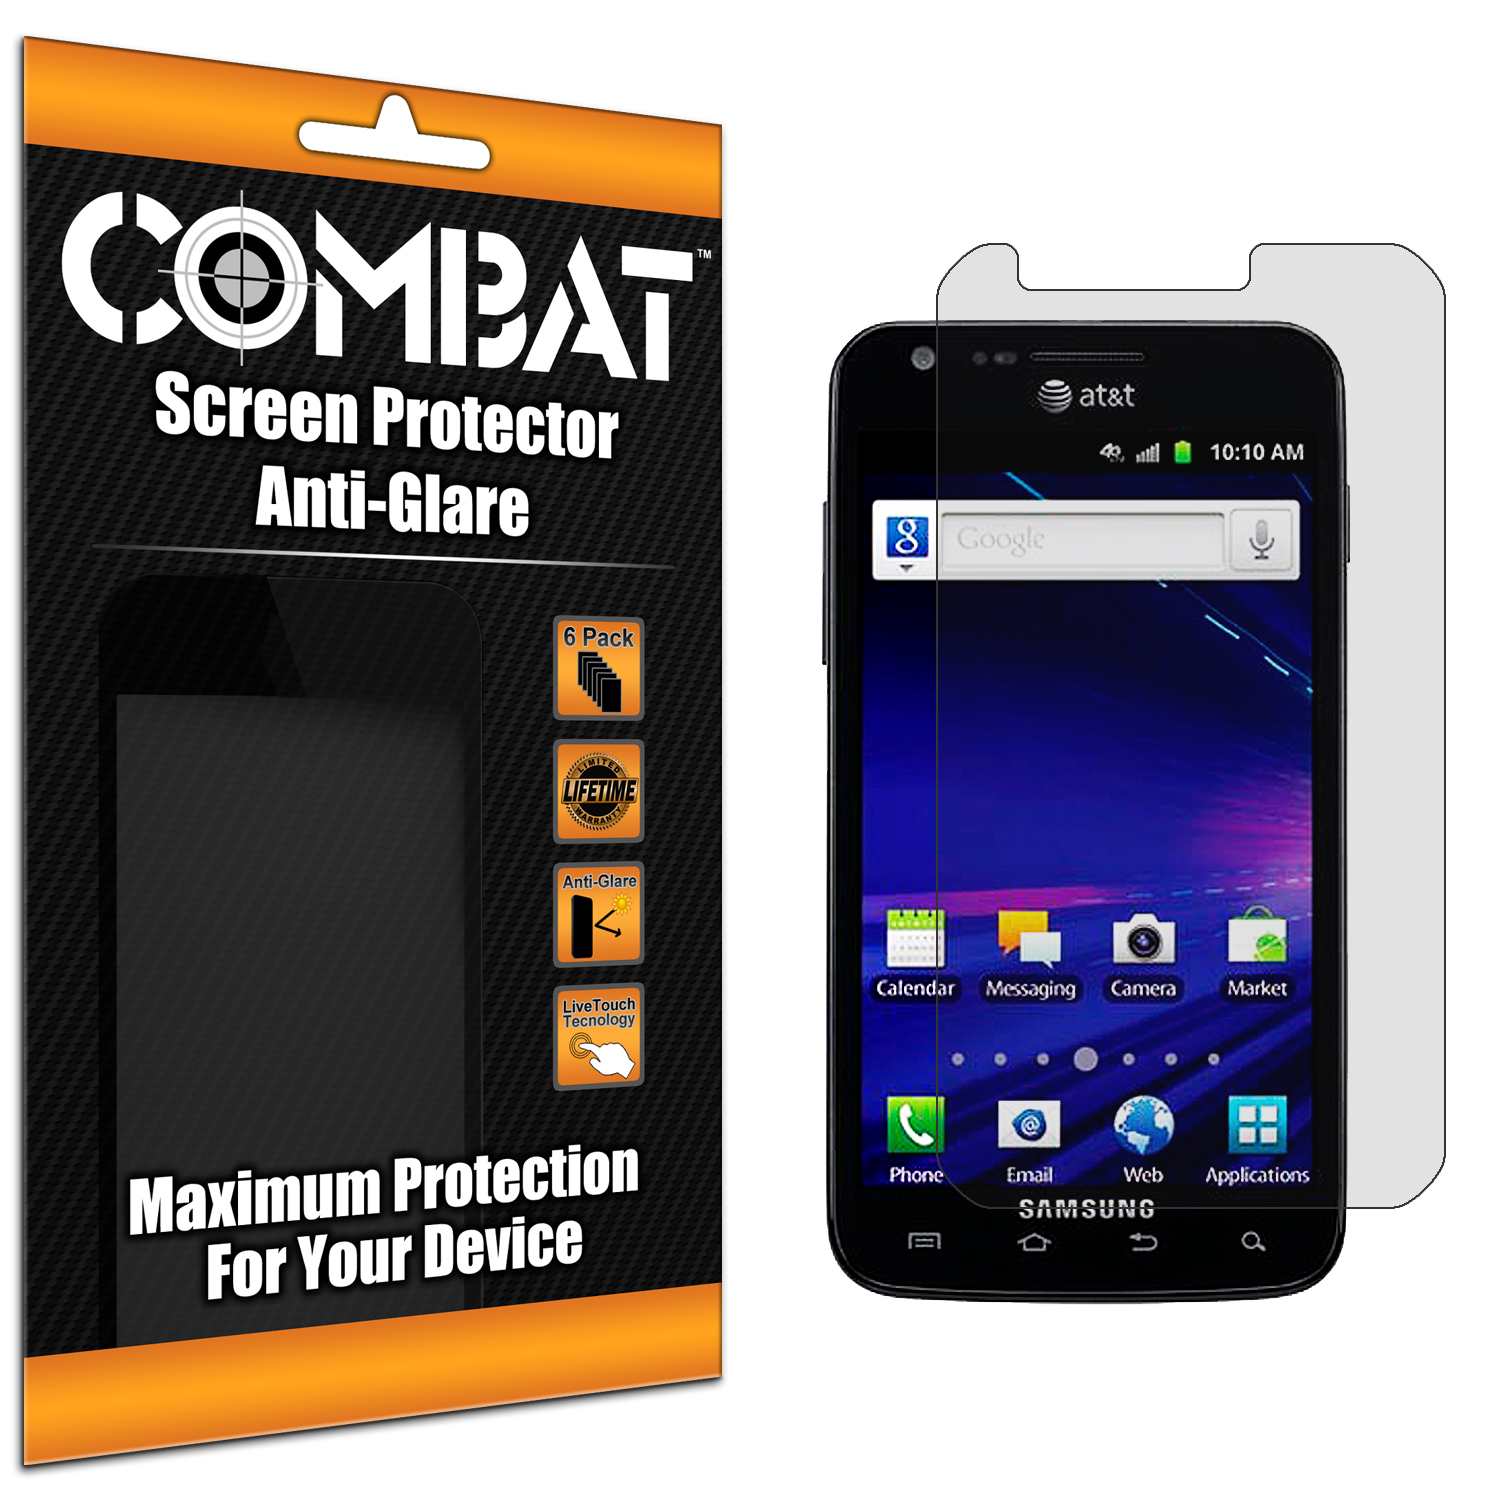 Samsung Skyrocket i727 Combat 6 Pack Anti-Glare Matte Screen Protector